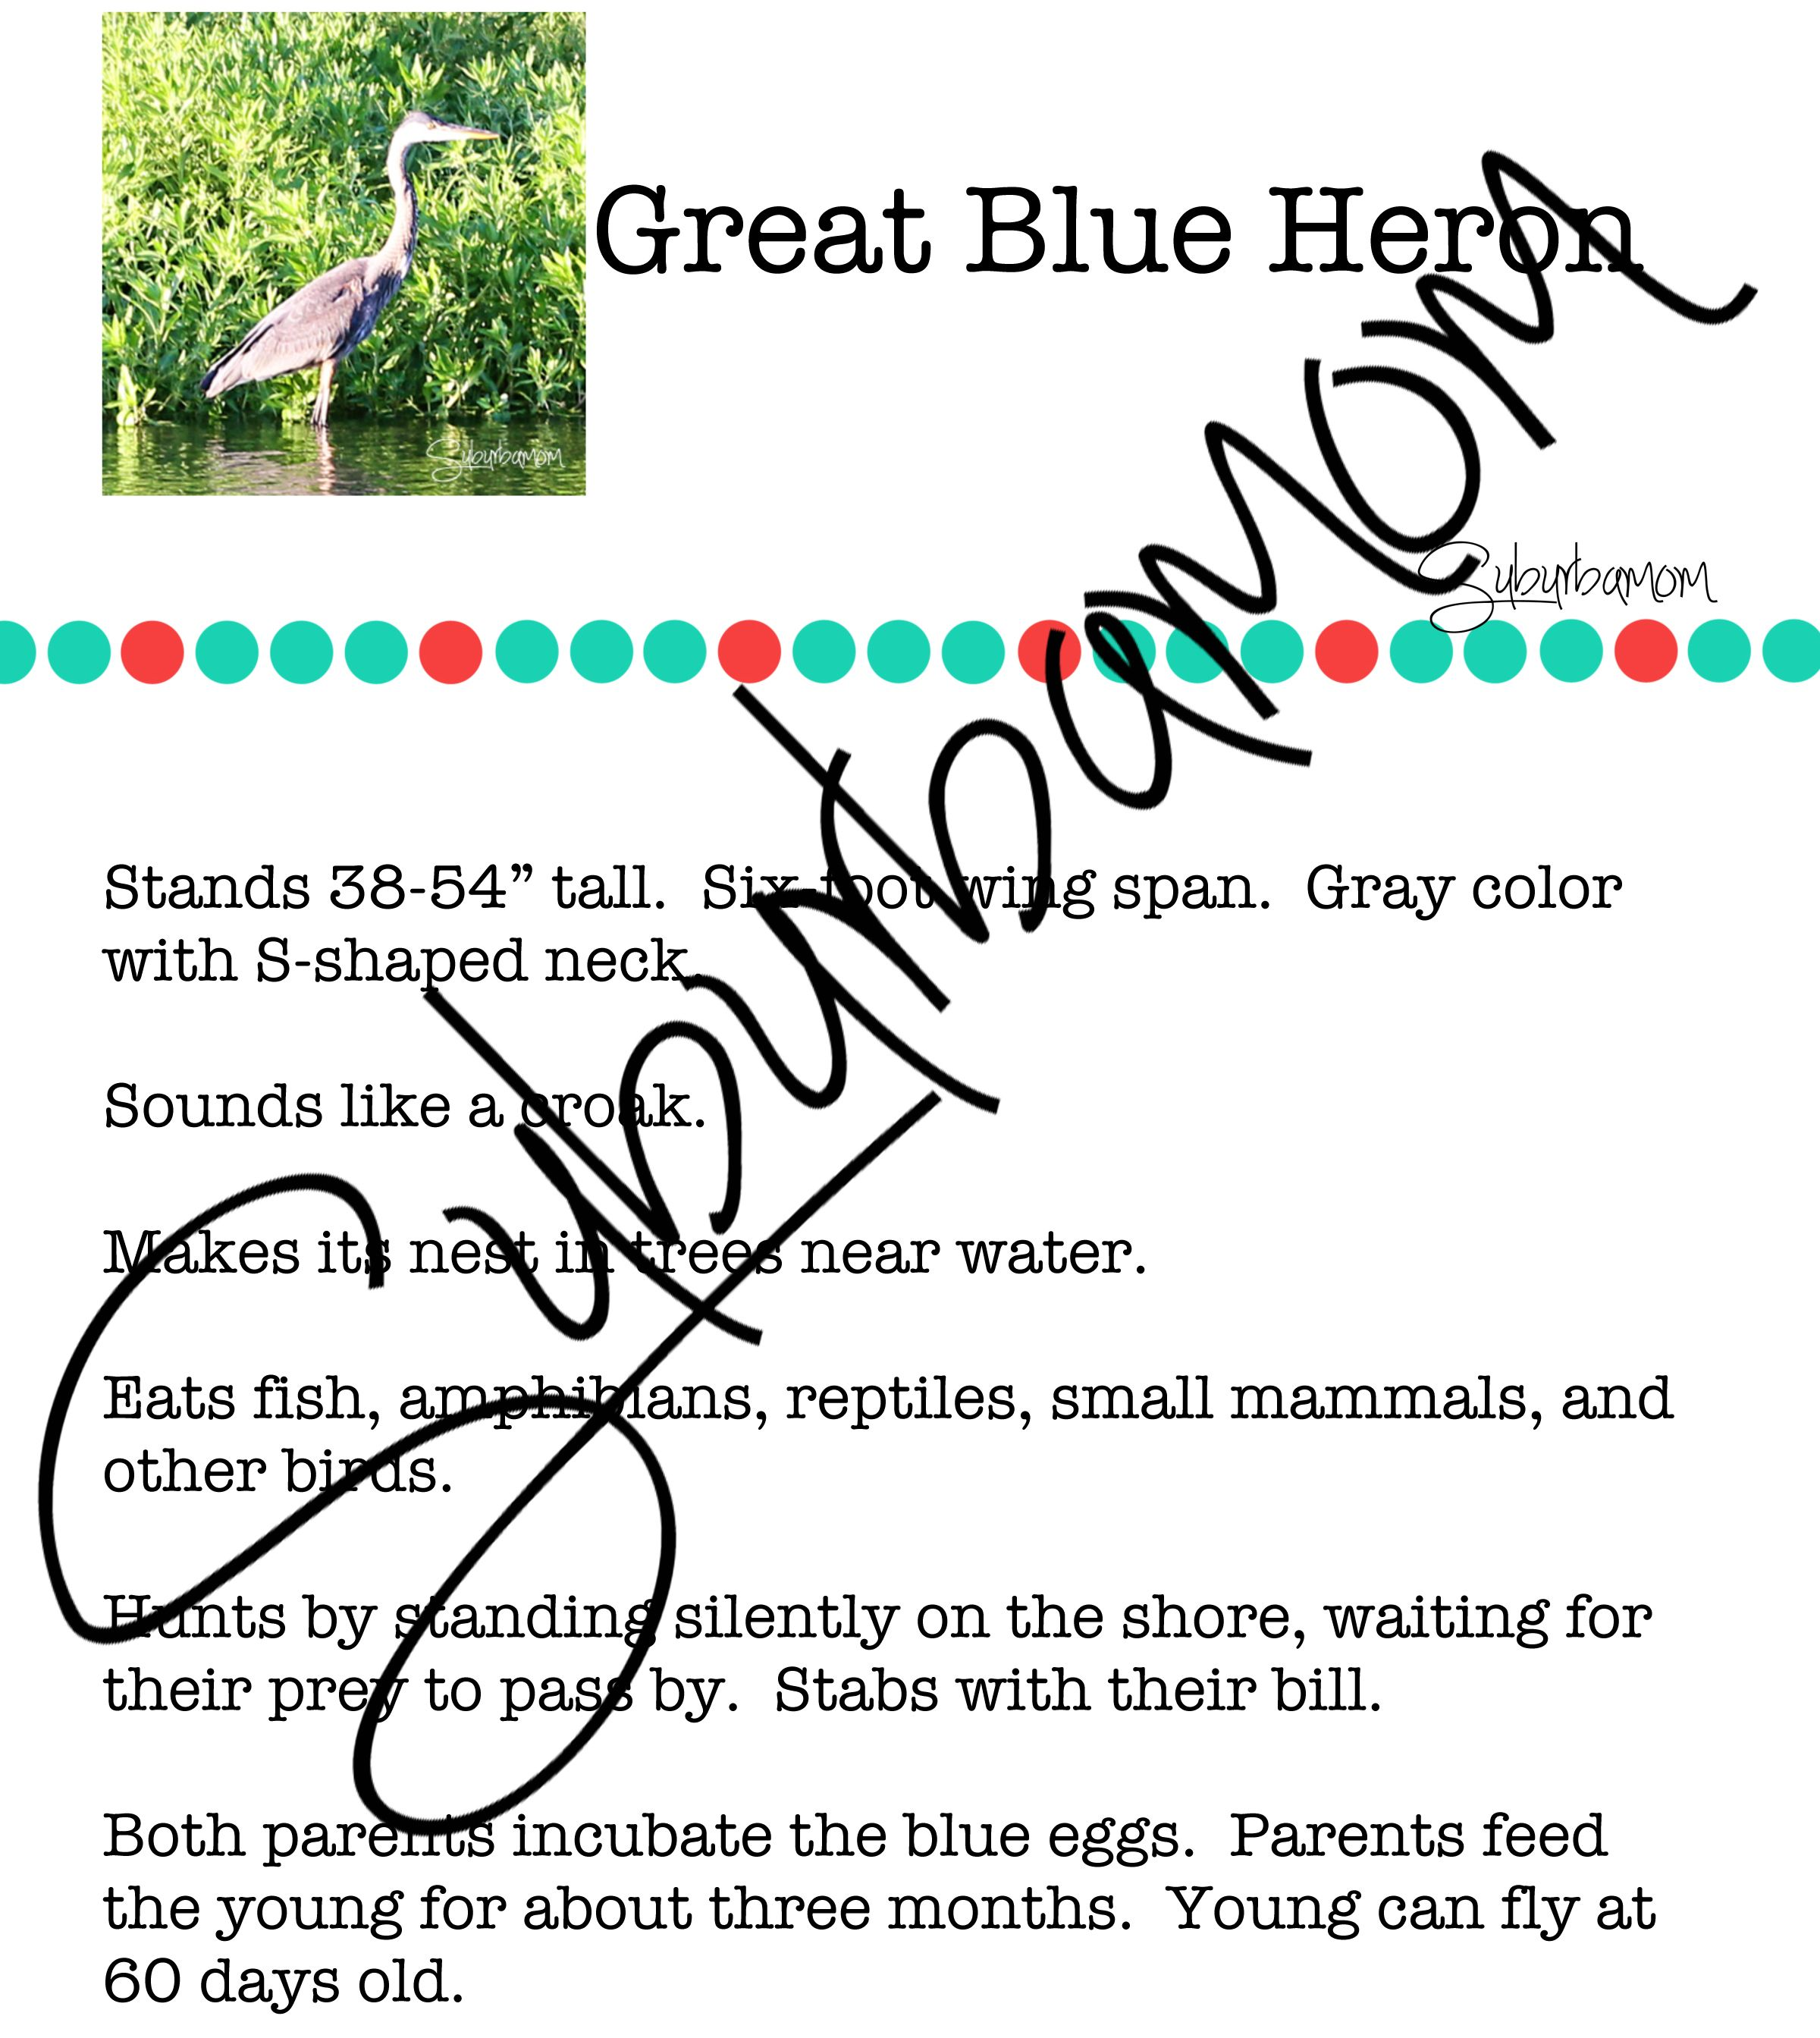 Fun Way To Learn About The Great Blue Heron In The